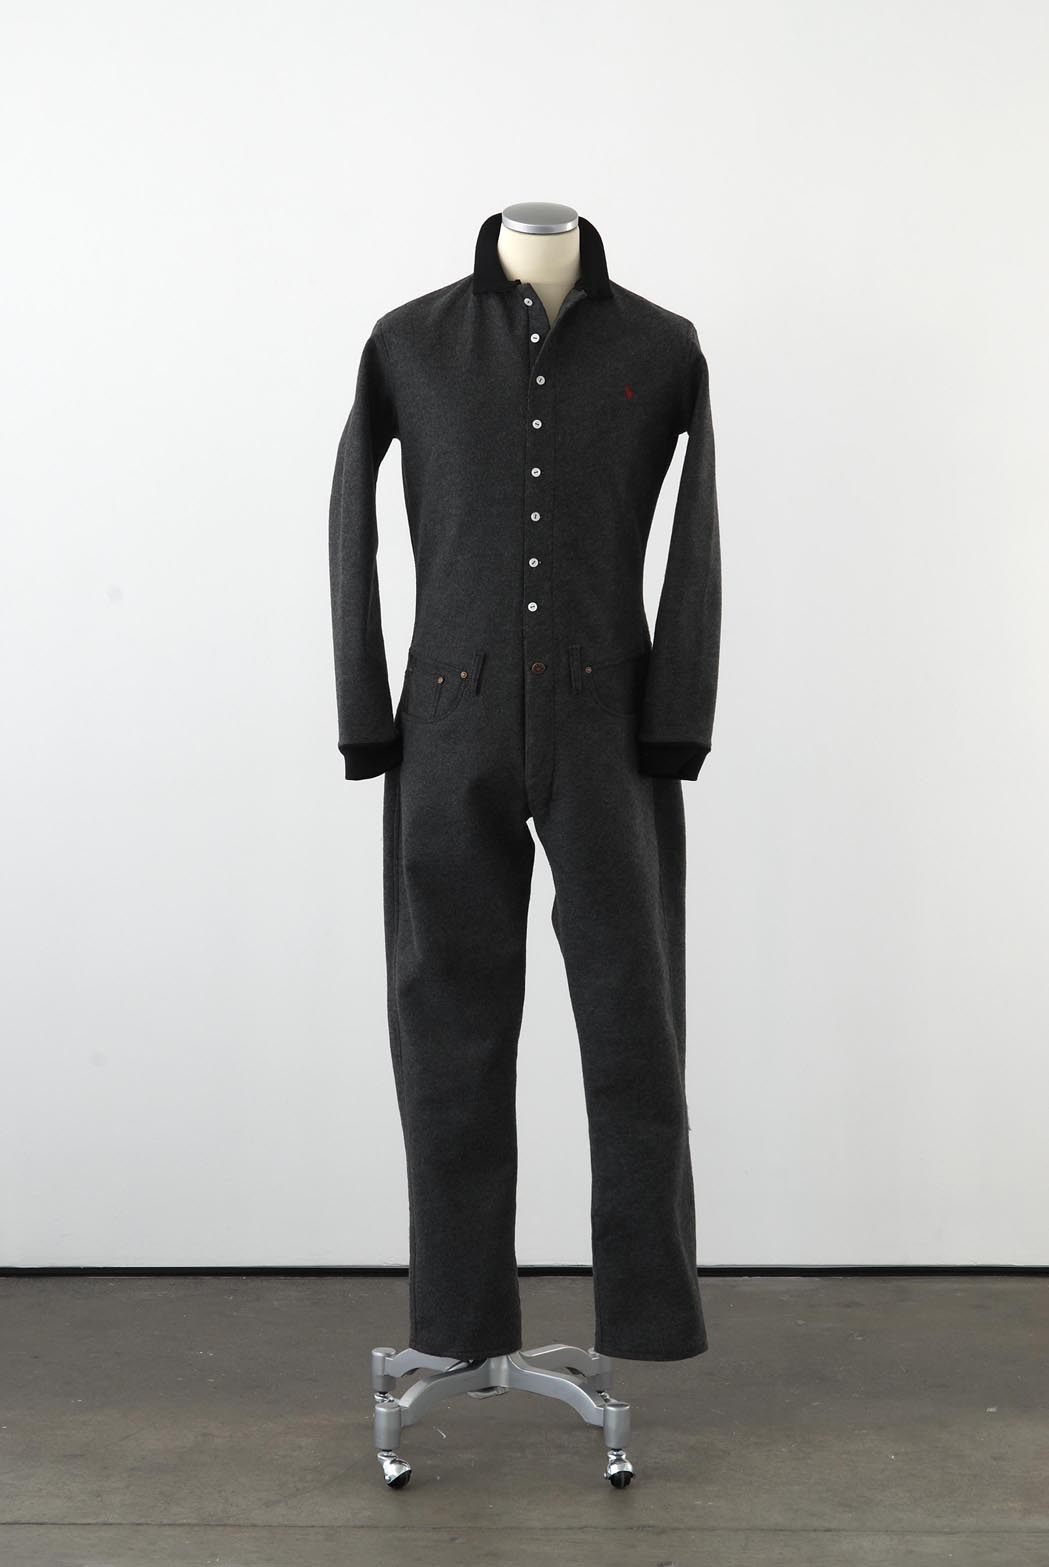 Matthew Darbyshire Standardised Production Clothing, Version 1 2009 Grey felt, cotton jersey & fittings on mannequin 185 x 45 x 34 cm